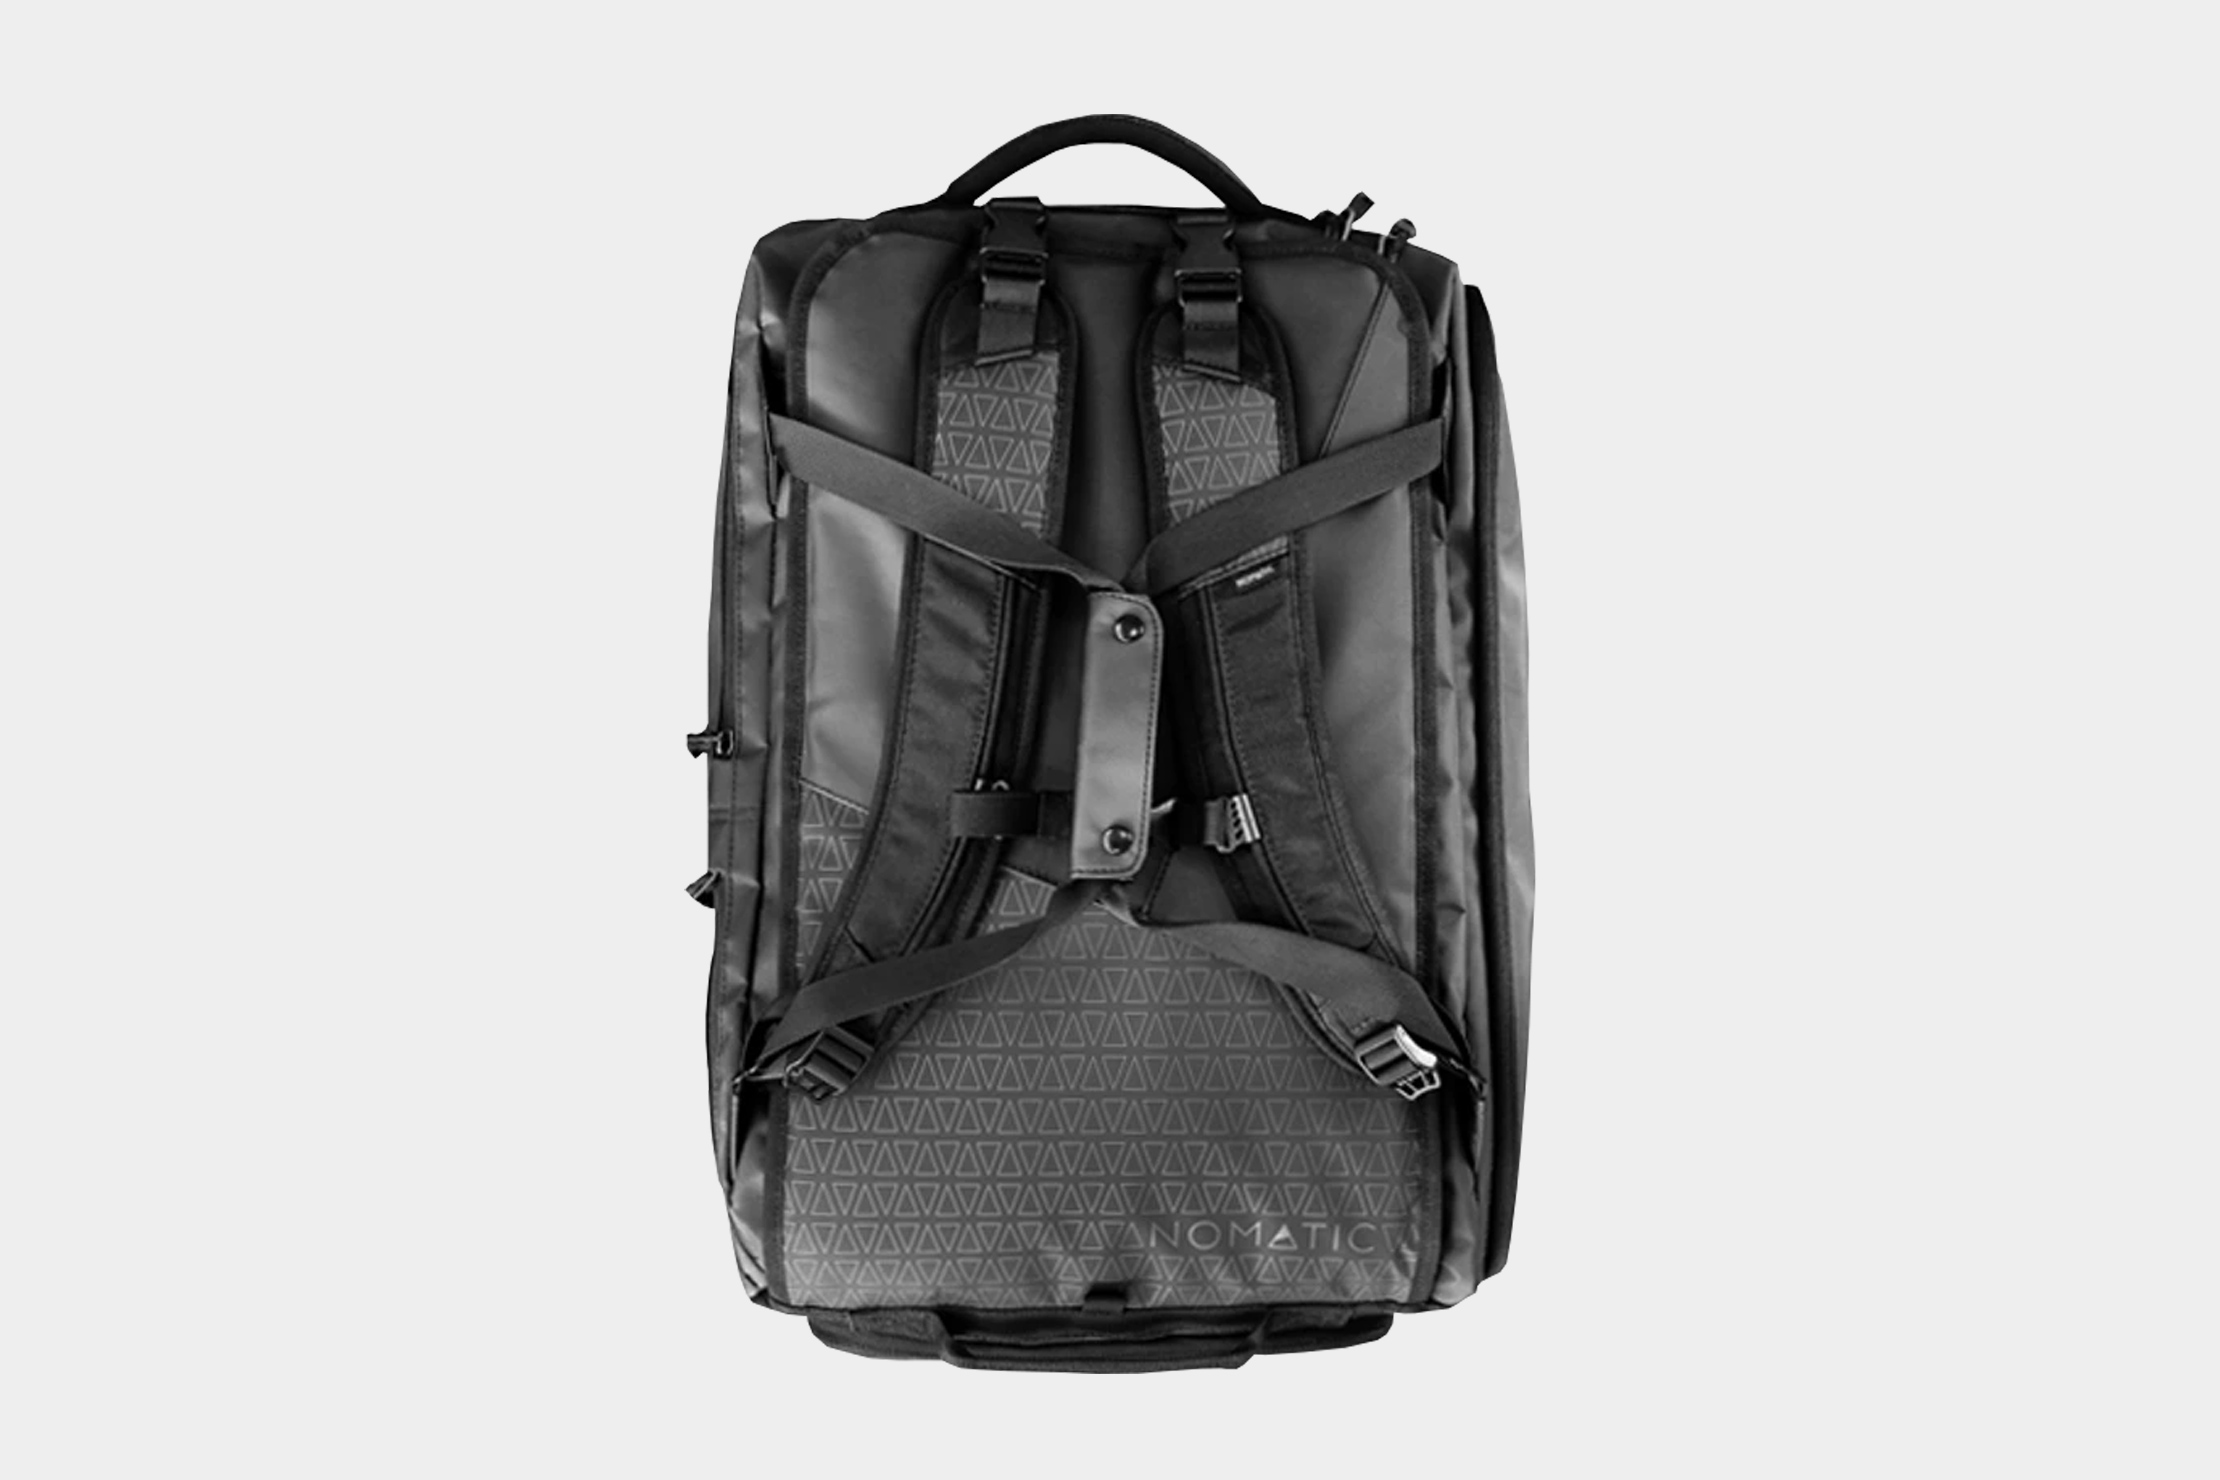 9b6ed540f37f NOMATIC Travel Bag (Backpack) Review | Pack Hacker